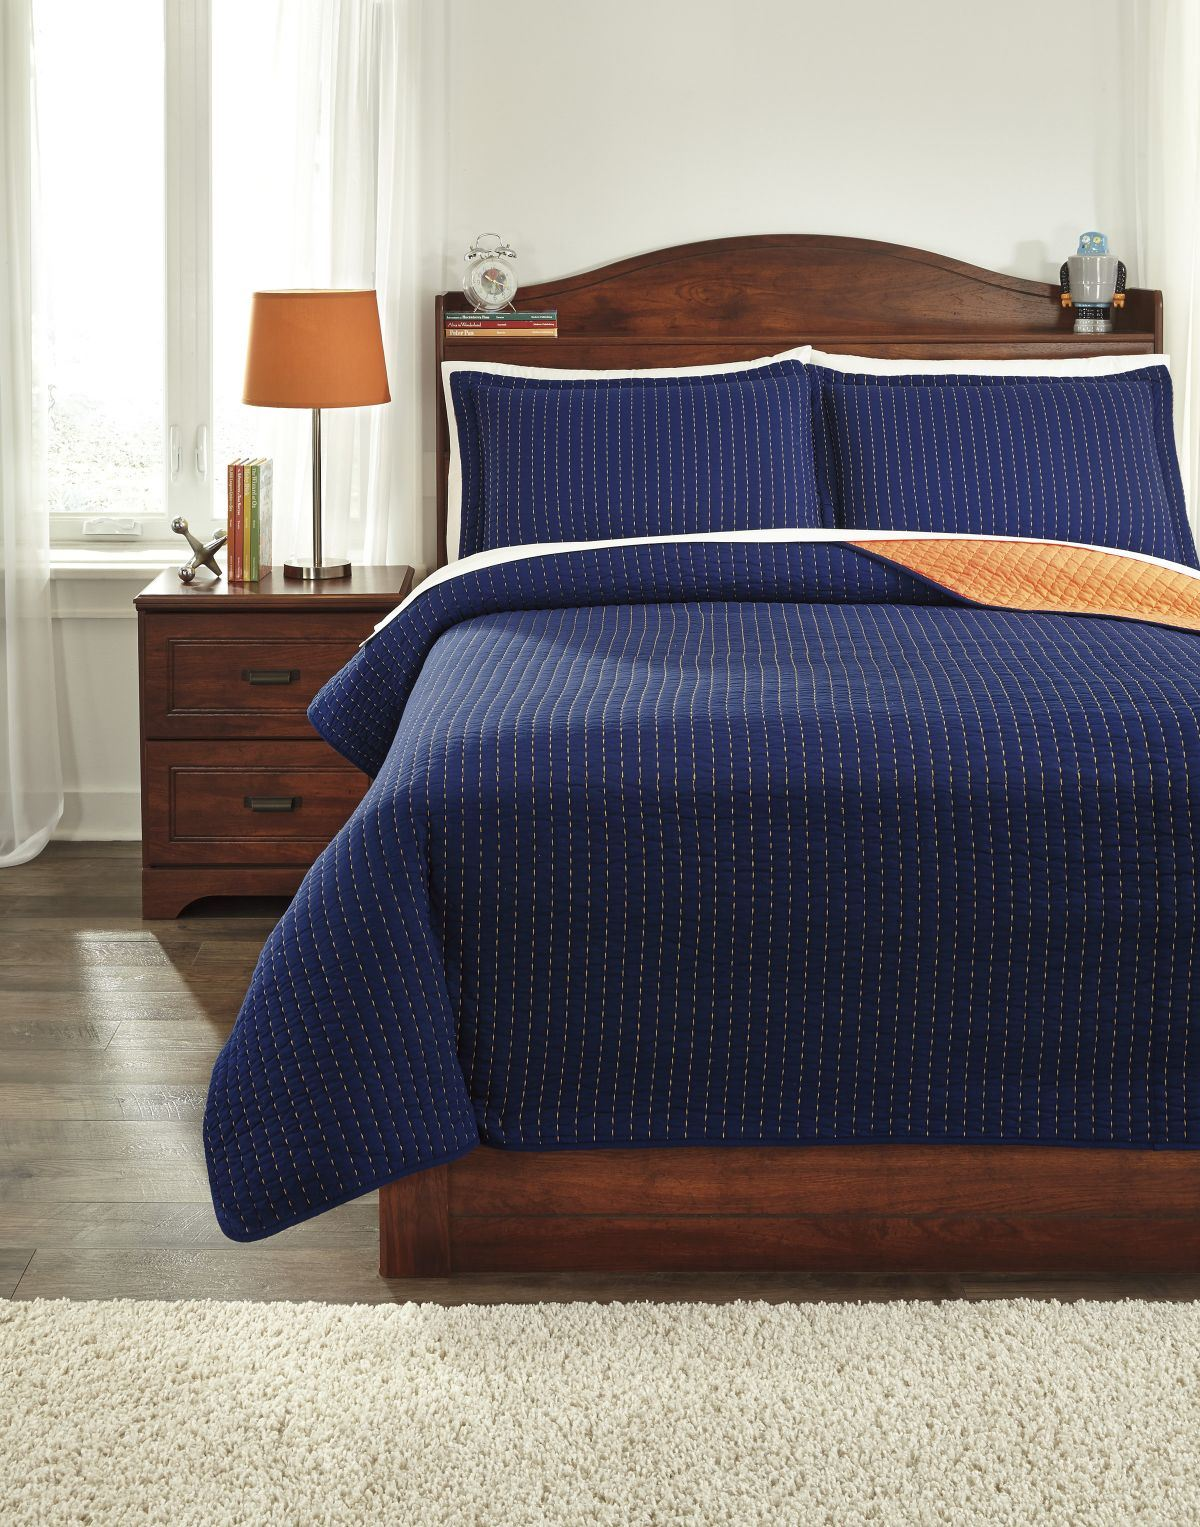 Picture of Dansby Coverlet Set